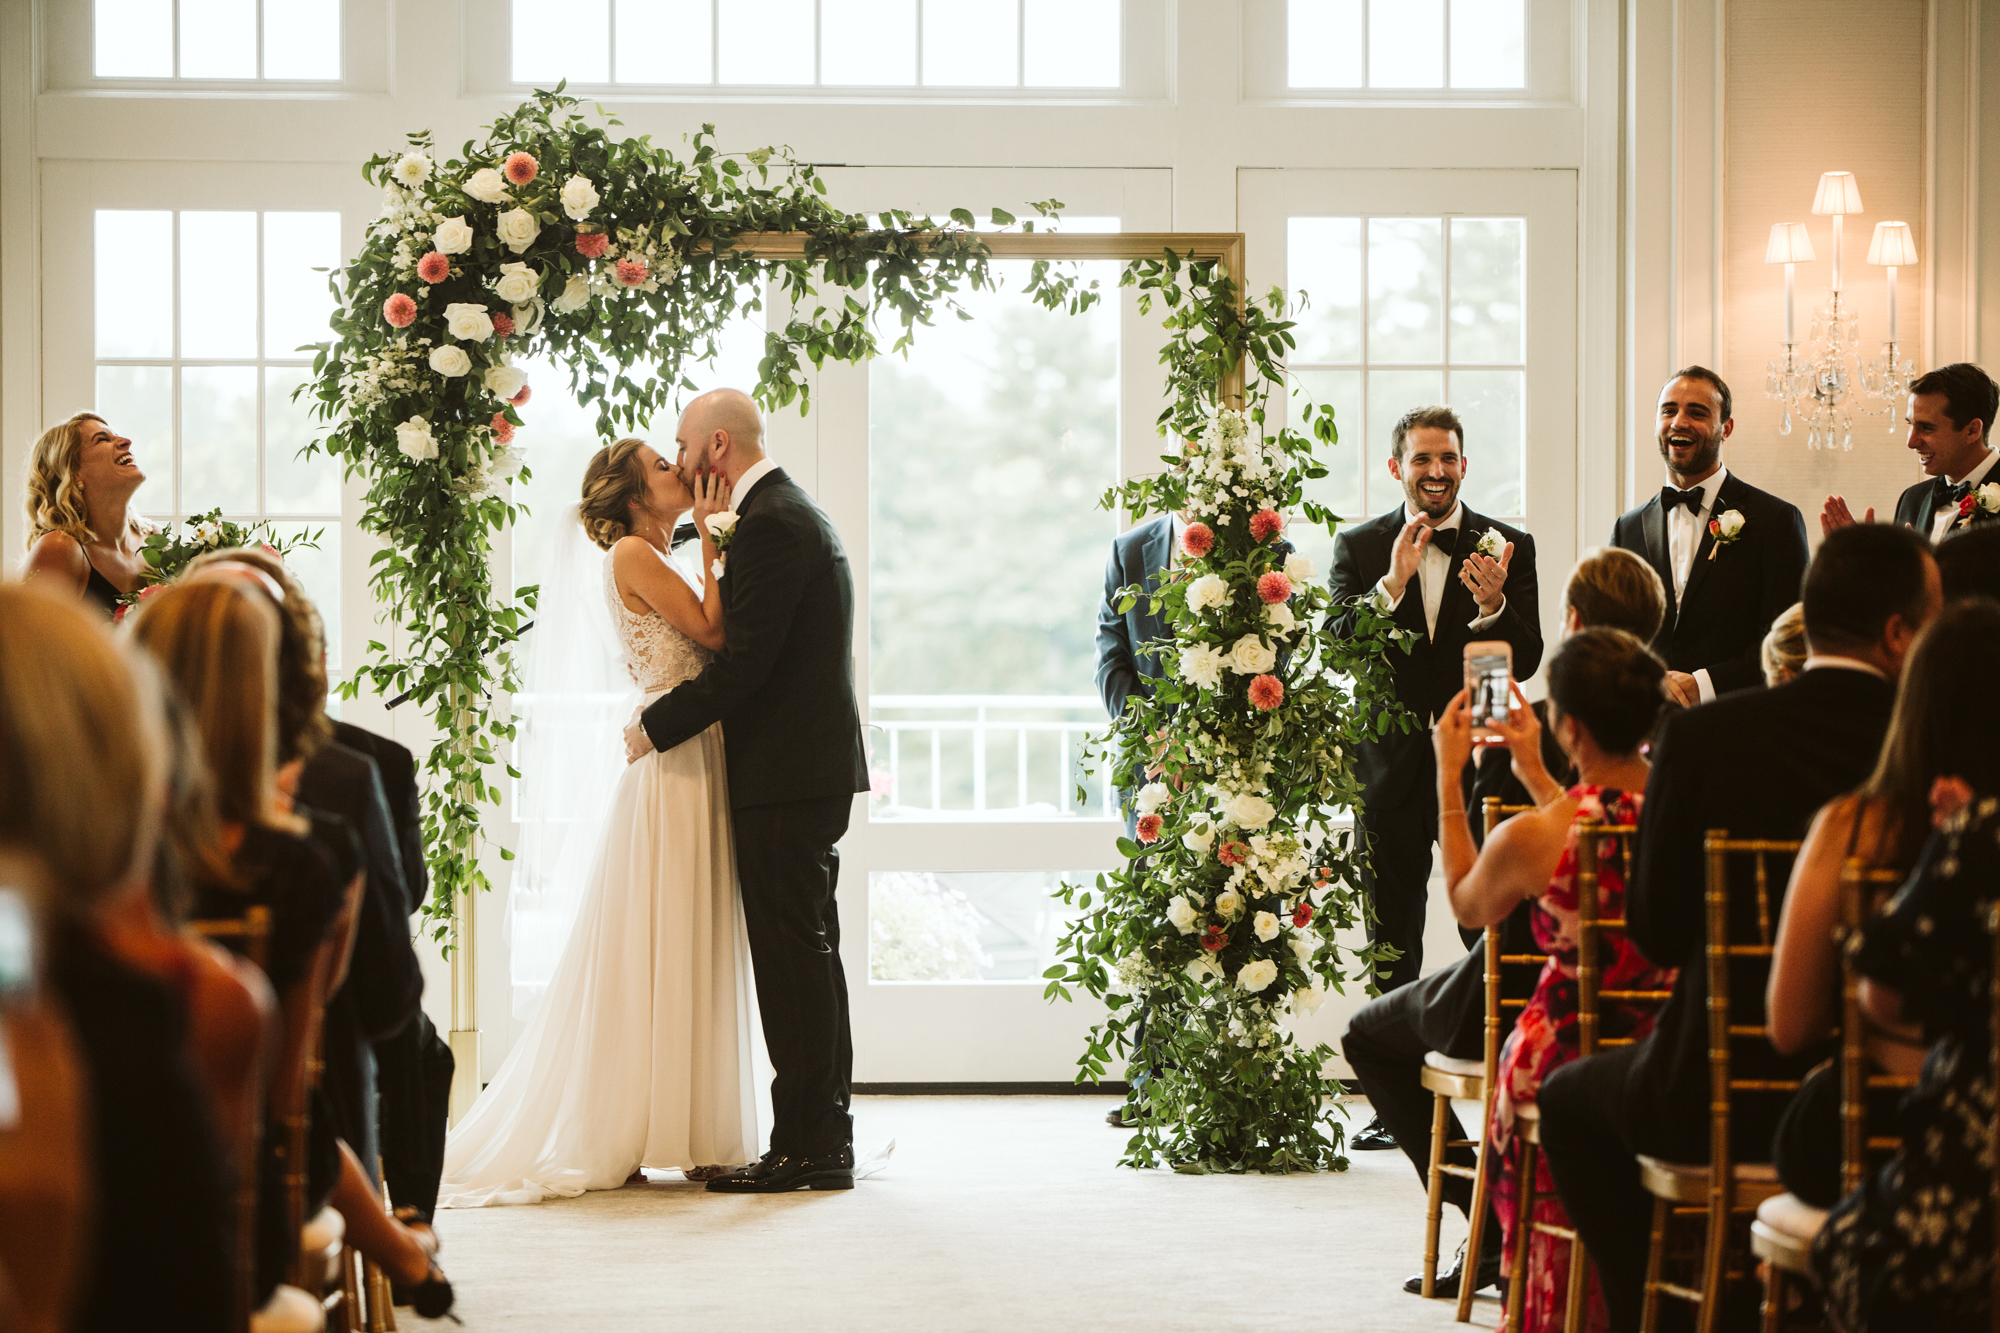 Elegant, Columbia Country Club, Chevy Chase Maryland, Baltimore Wedding Photographer, Classic, Traditional, Jewish Wedding, Bride and Groom Under Floral Archway, Meg Owen Floral Designs, First Kiss